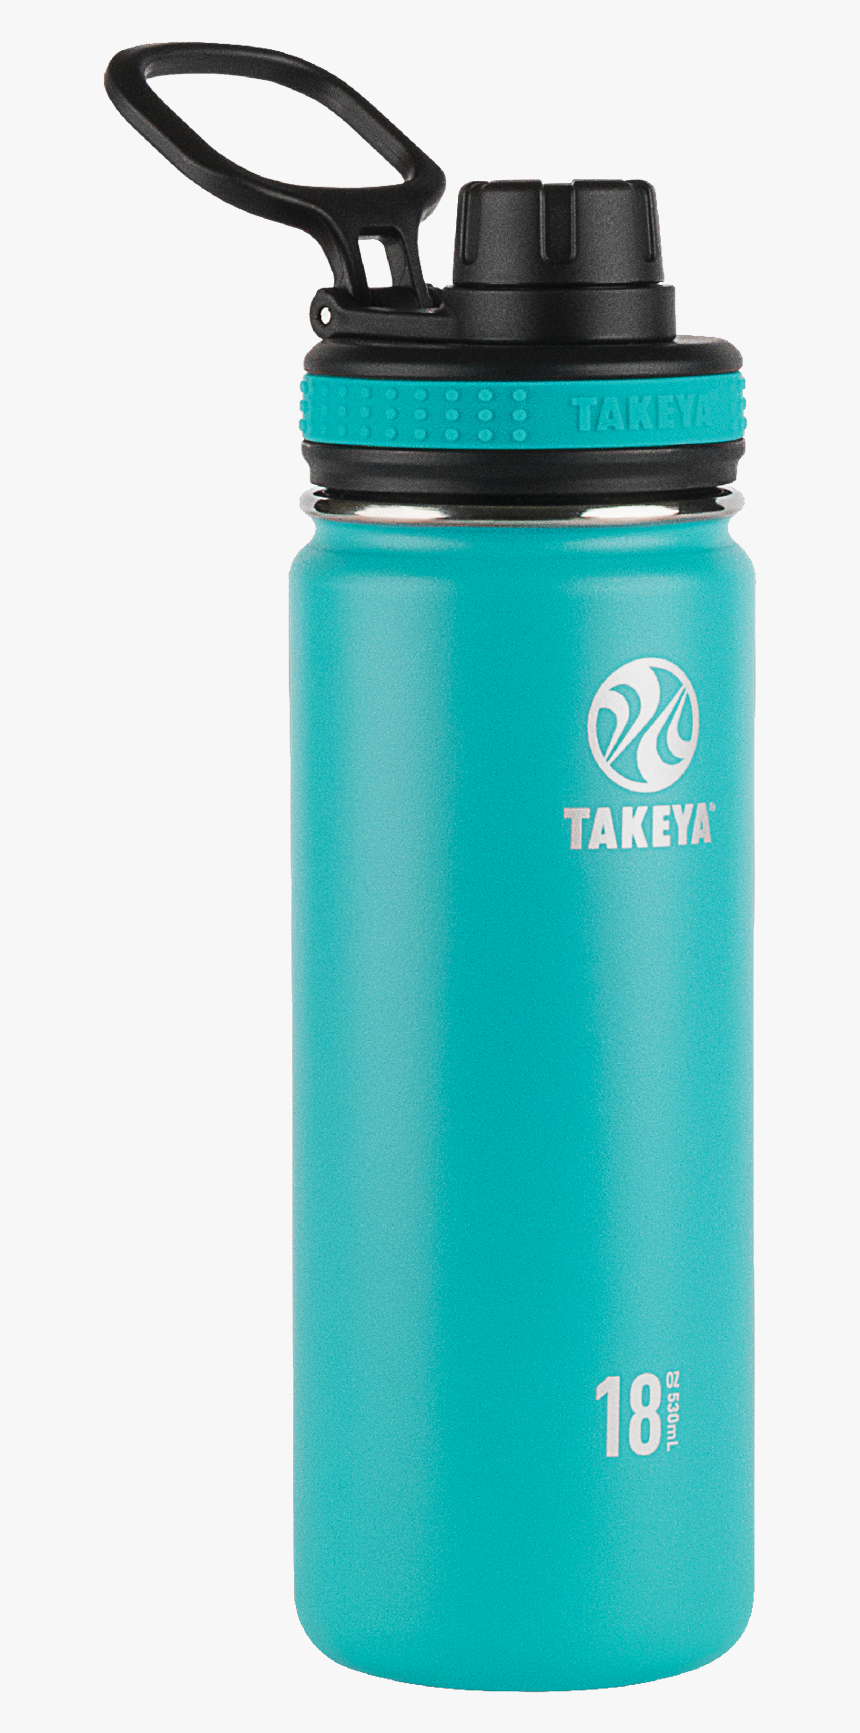 18oz Water Bottle, HD Png Download, Free Download